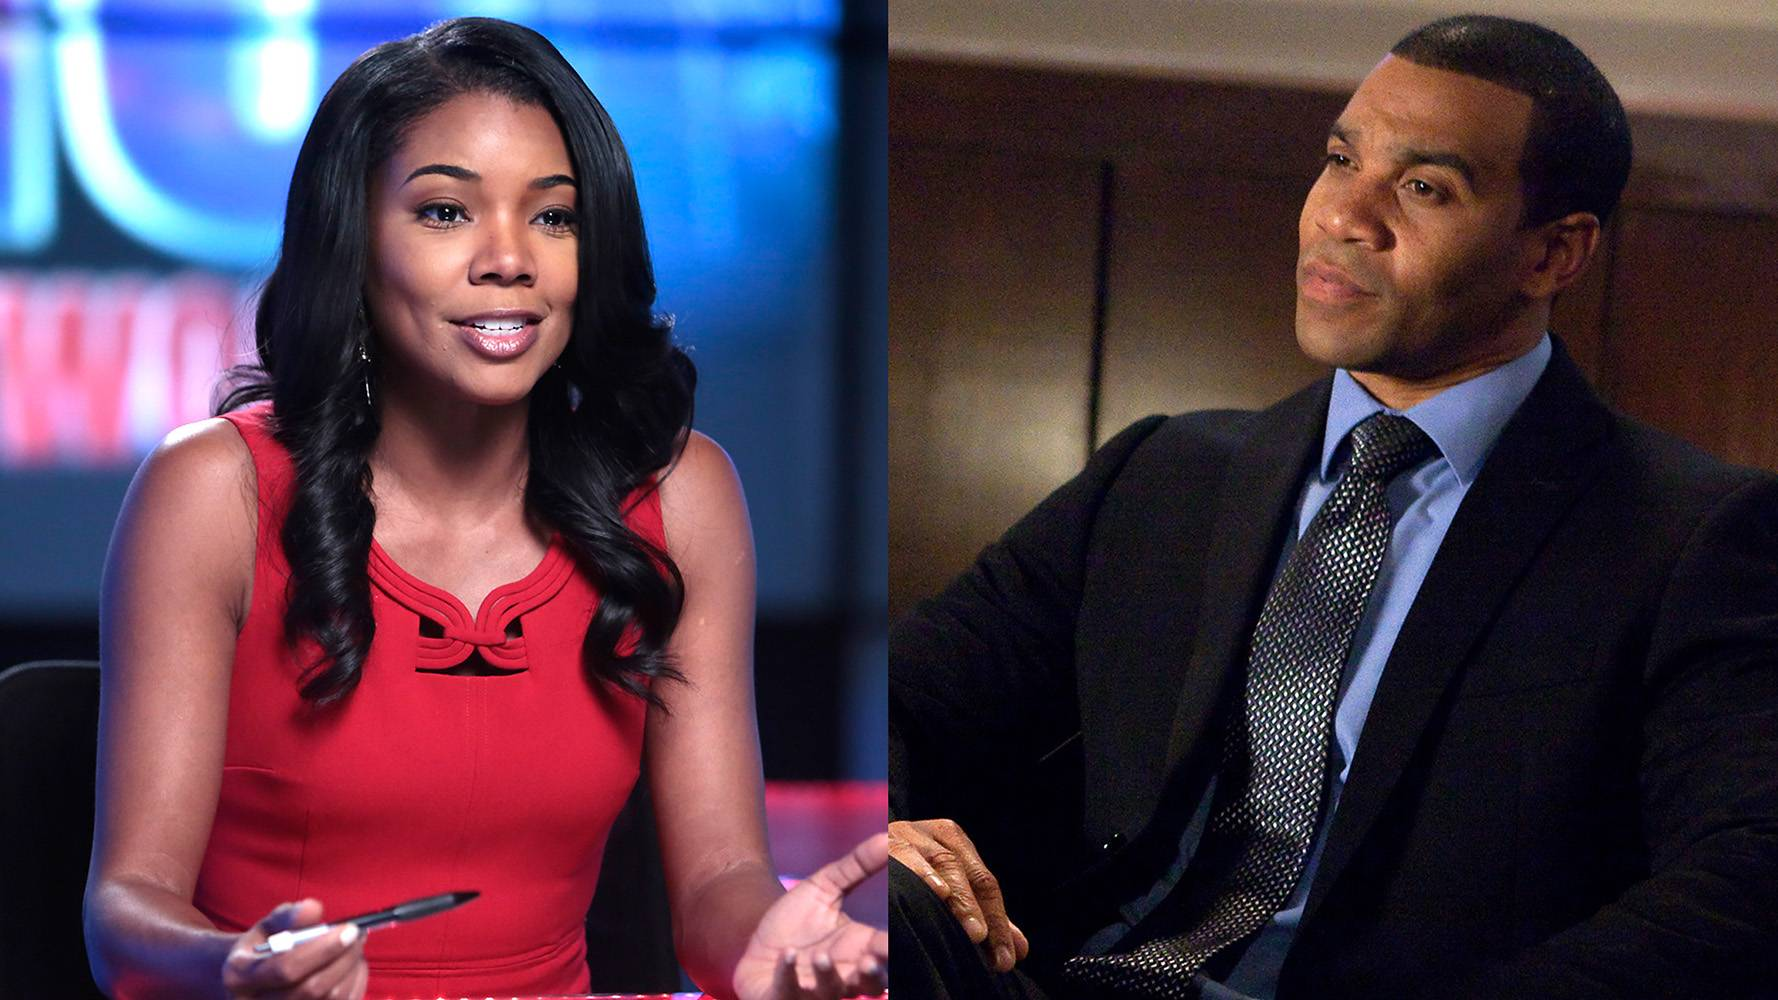 Mark Bradley and Mary Jane  - The Washington, D.C., native starred on The Bold and the Beautiful, but now Aaron D. Spears has come to BET as Mary Jane's best friend and co-worker Mark Bradley.(Photos: BET)